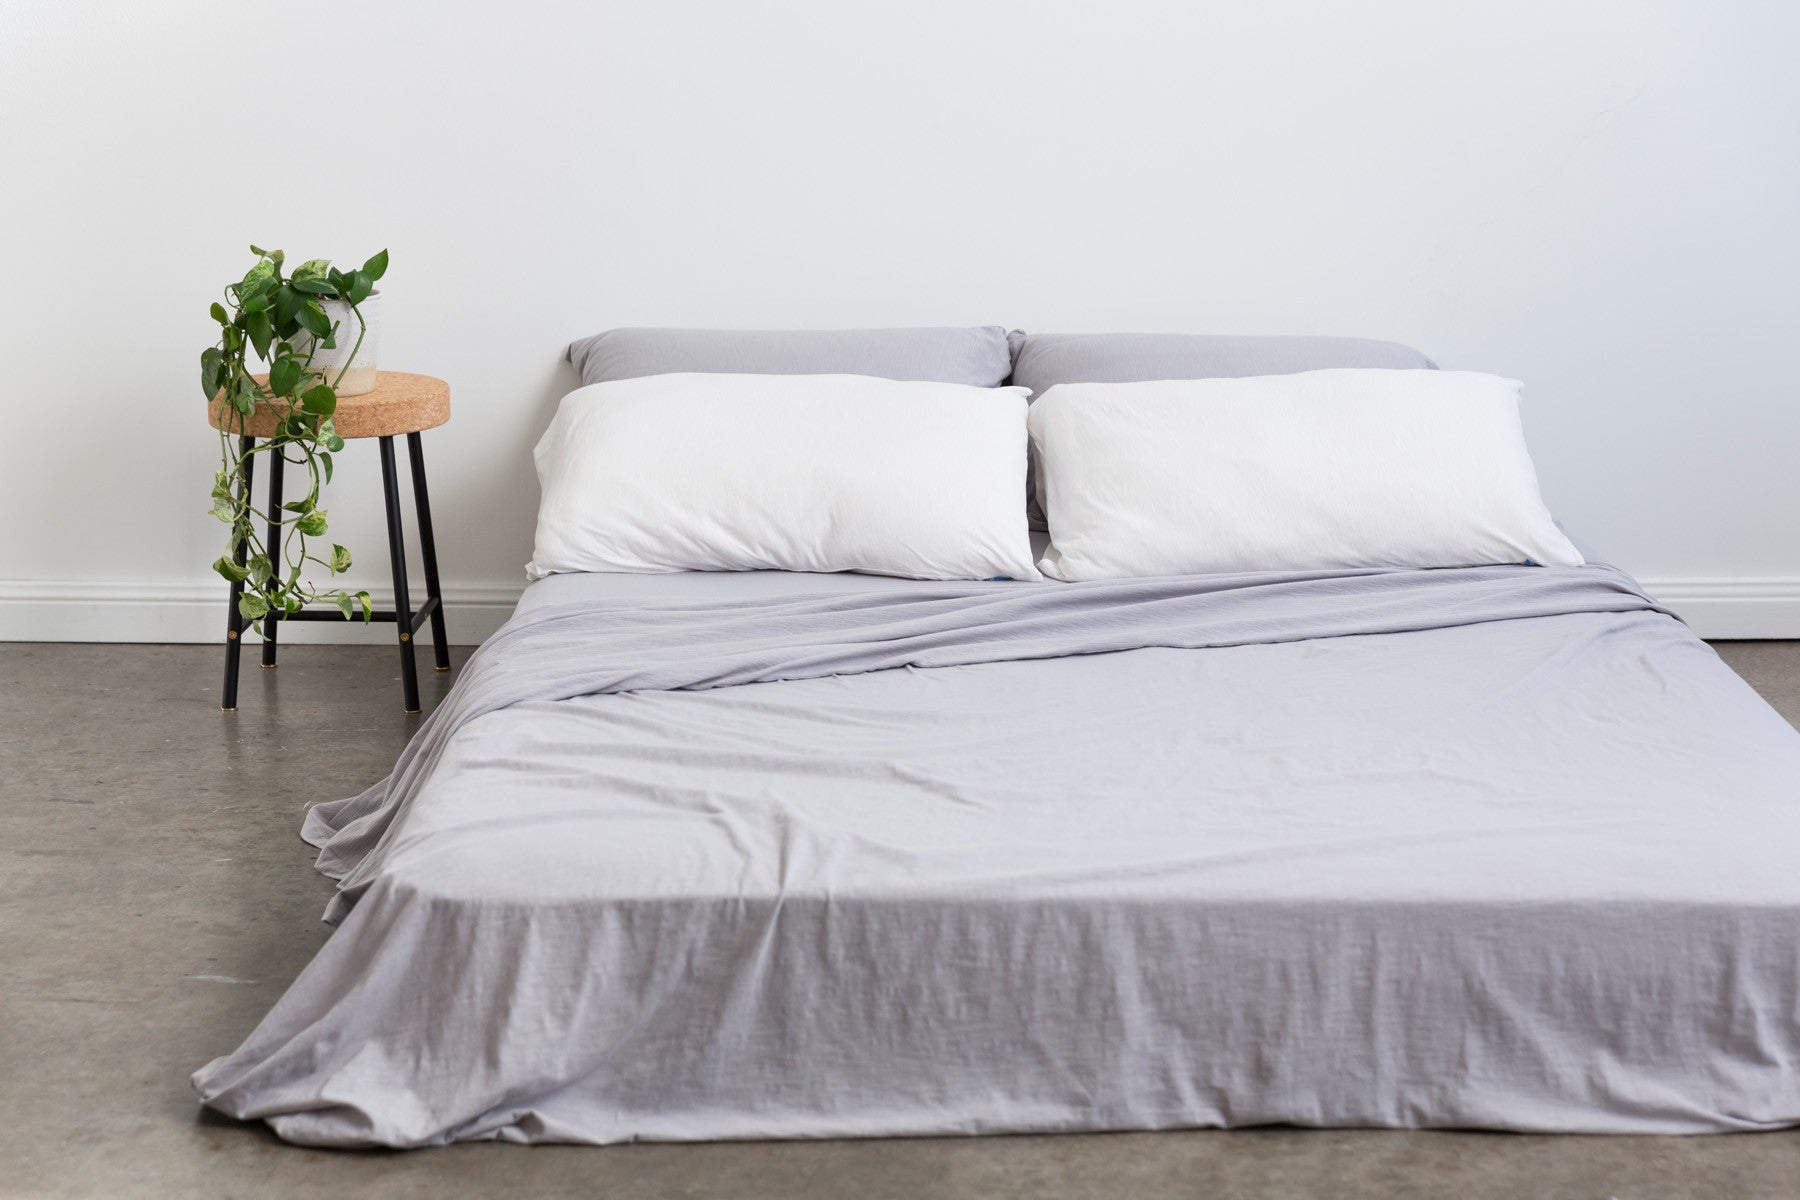 T SHEET™ flat sheets – fortable jersey knit flat bed sheets